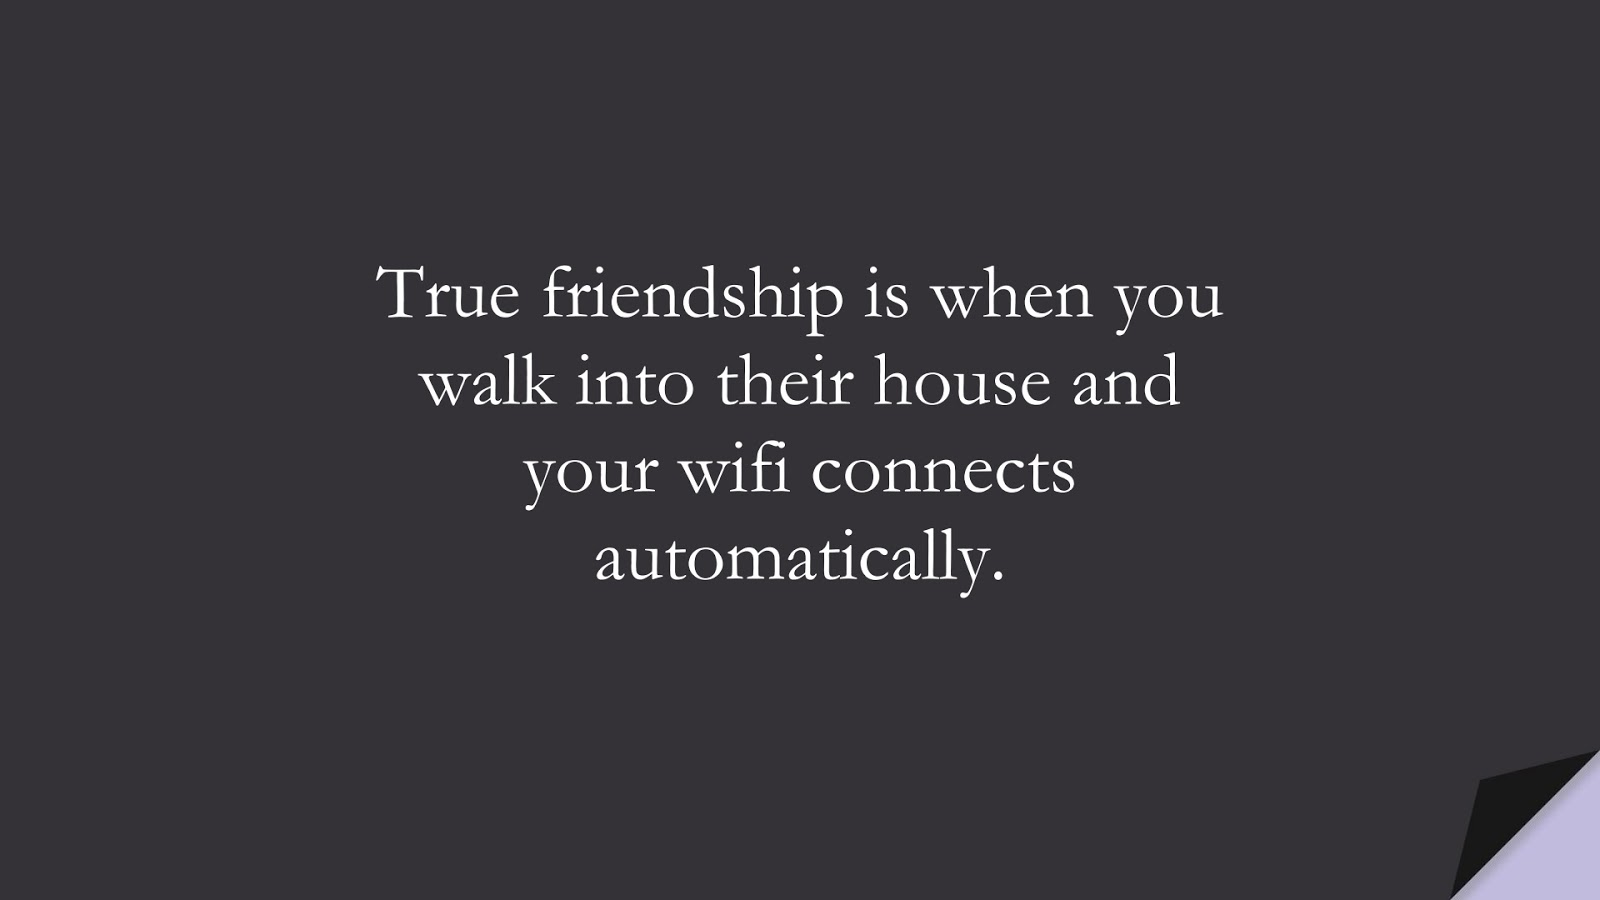 True friendship is when you walk into their house and your wifi connects automatically.FALSE